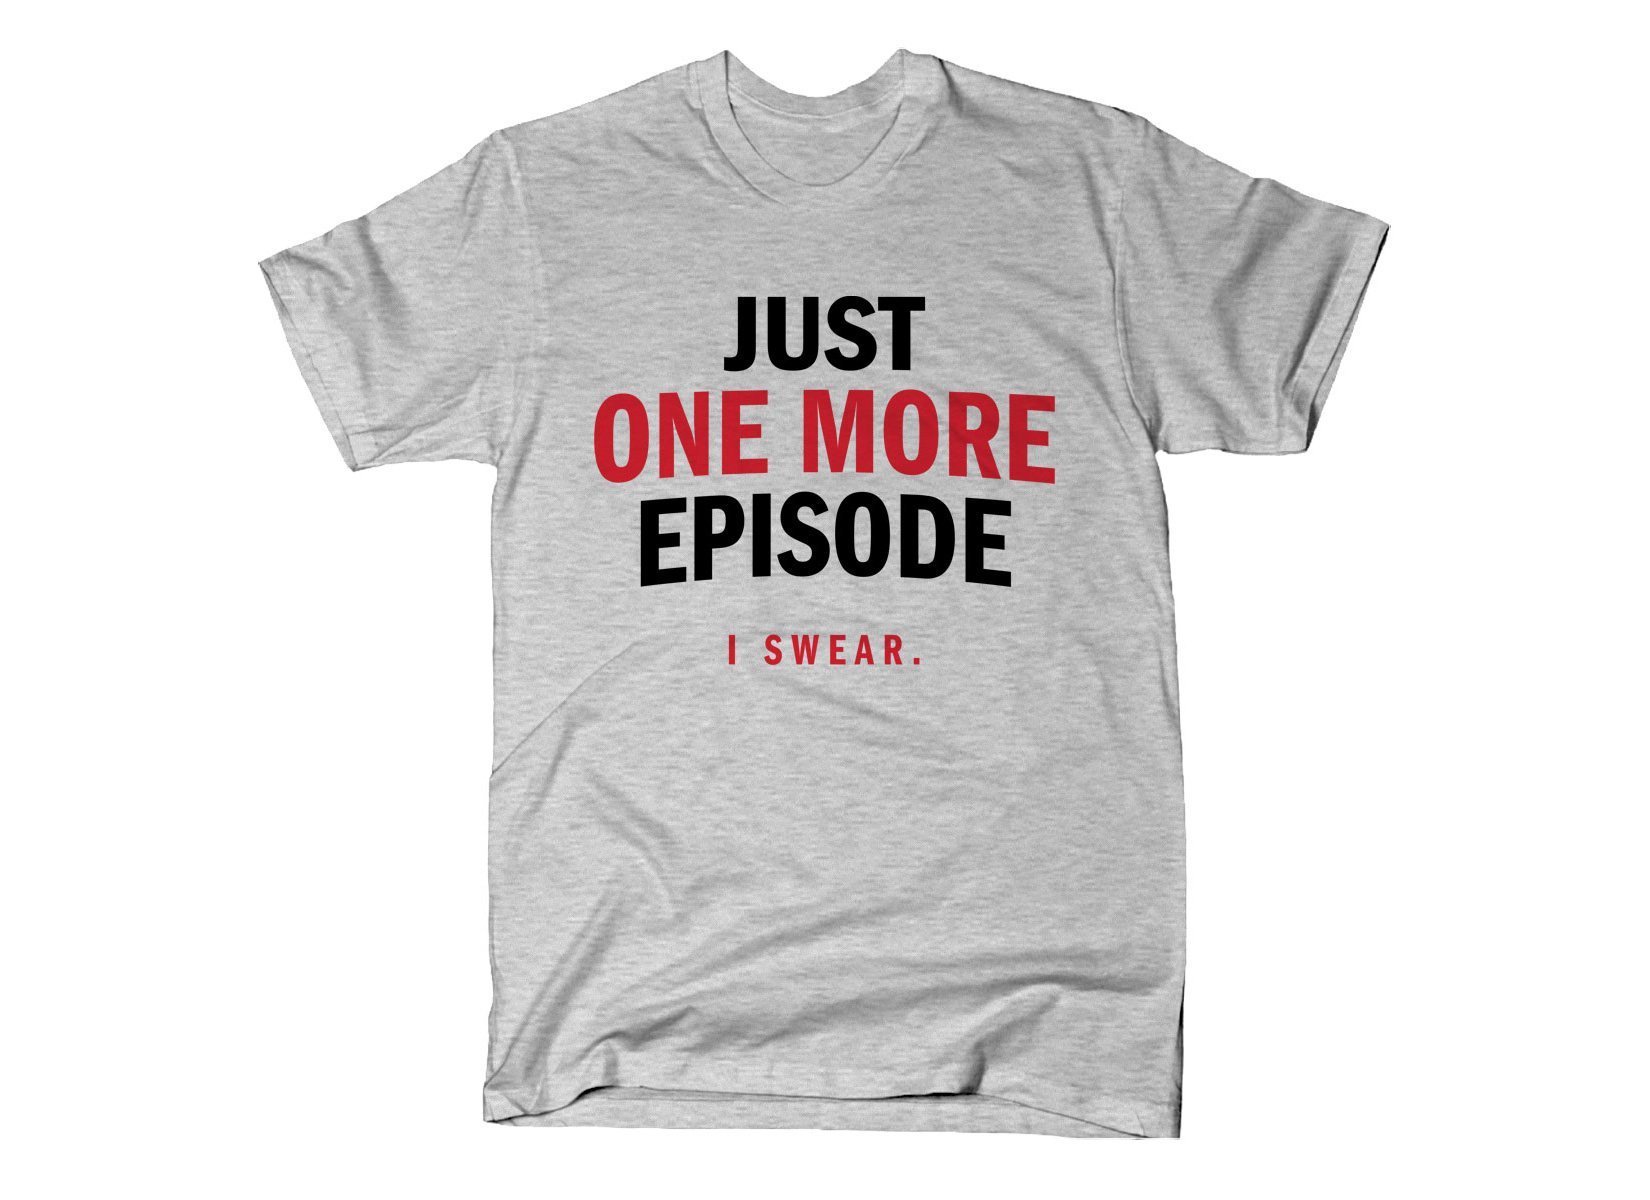 Just One More Episode on Mens T-Shirt